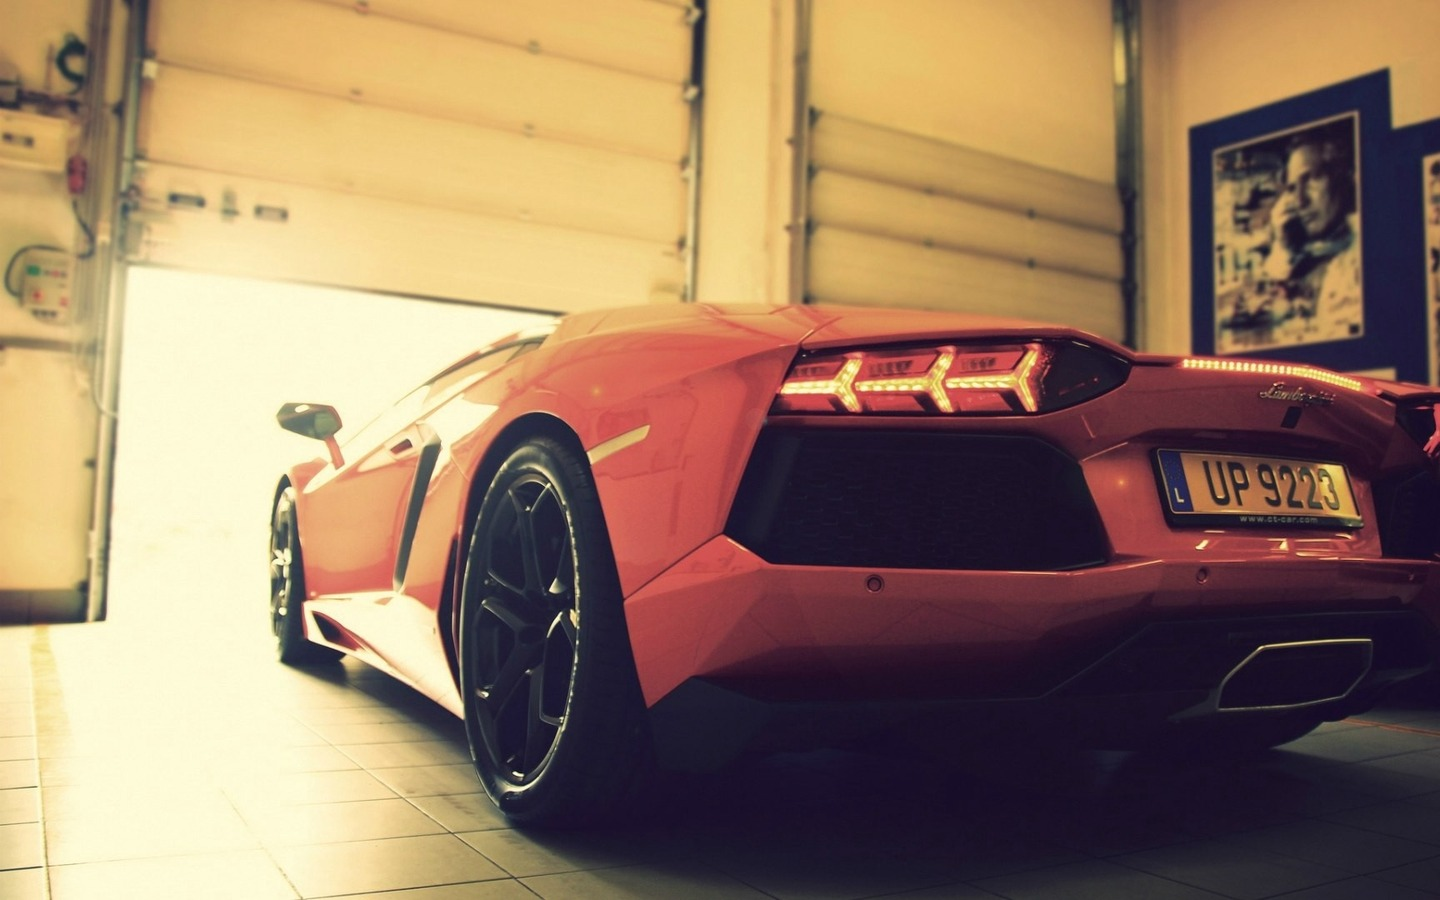 Download wallpapers 1440x900 lamborghini, garage, style widescreen 16